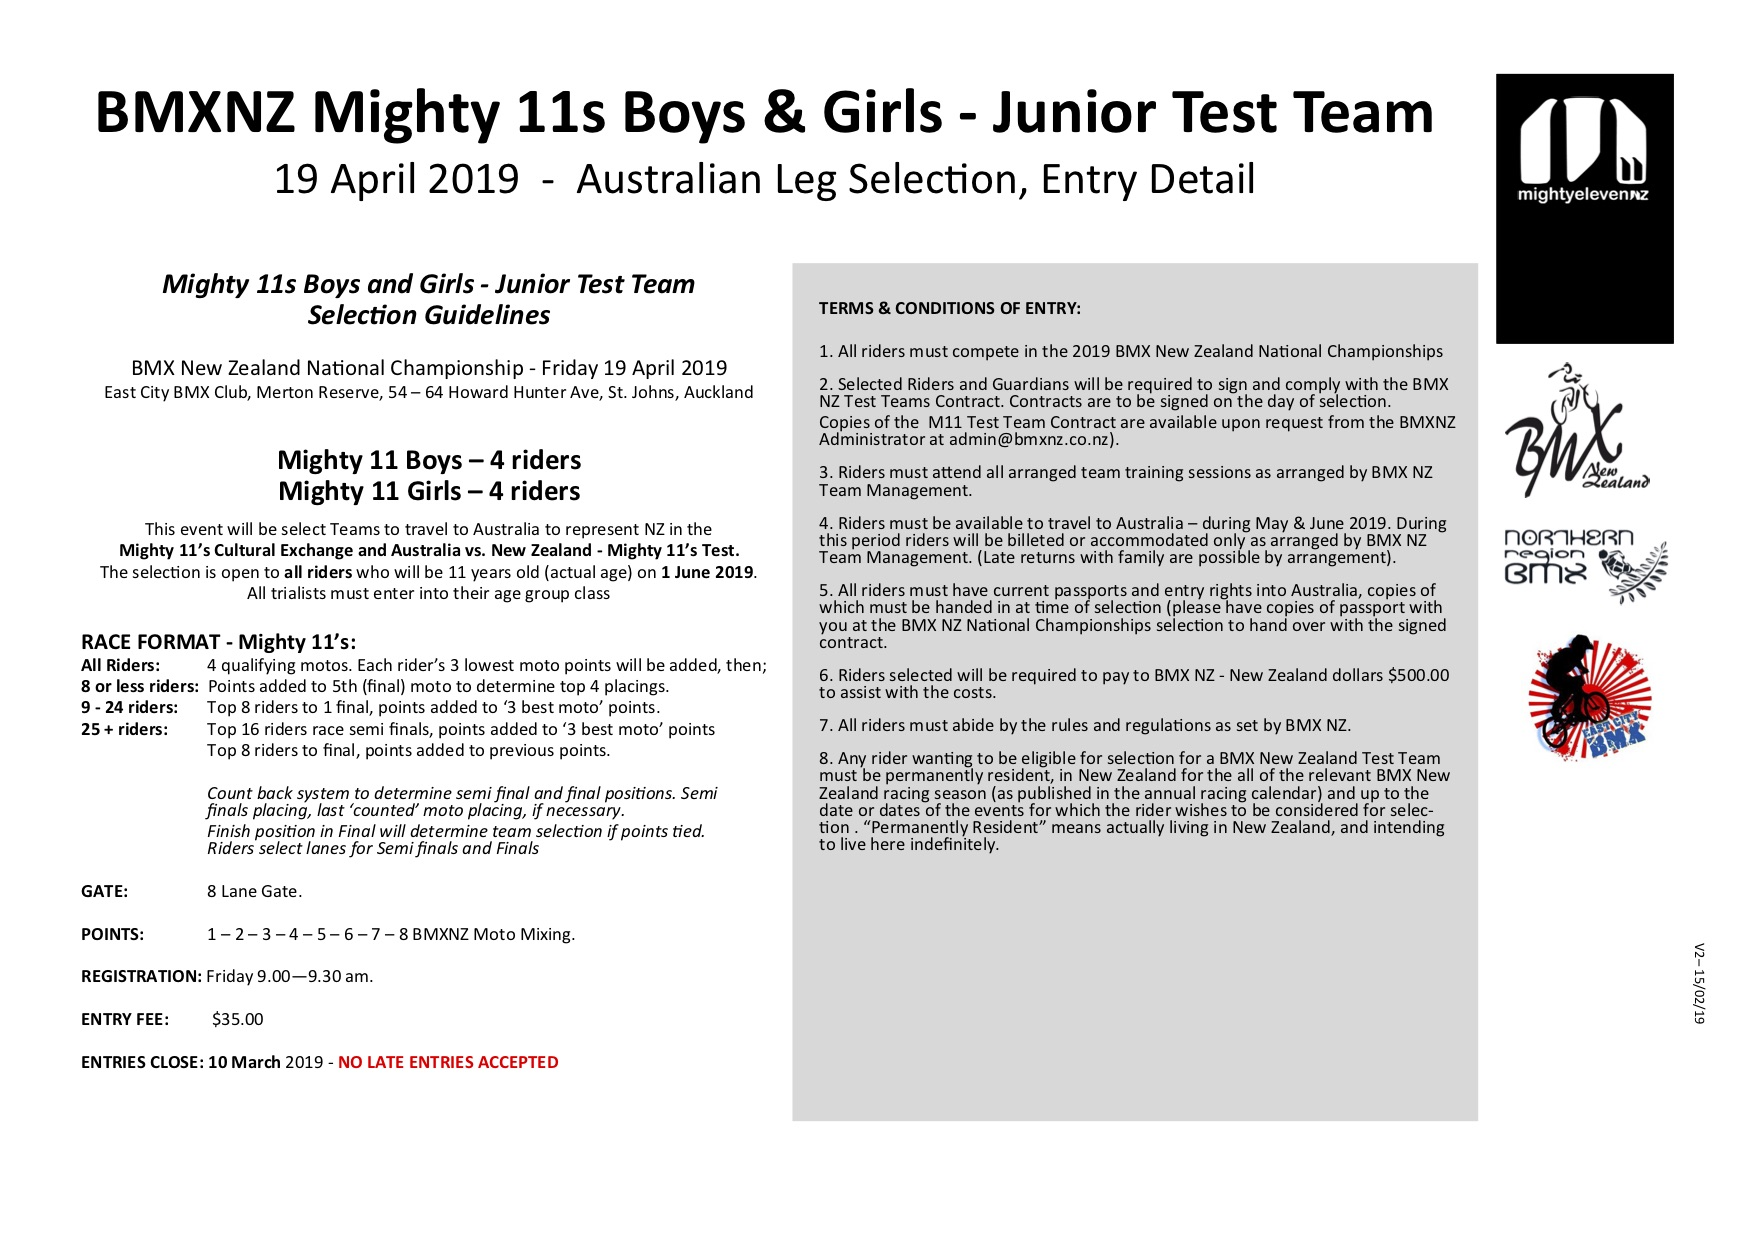 outlet store 691b0 16cd6 Upcoming Events | 2019 BMXNZ Mighty 11s Boys & Girls ...